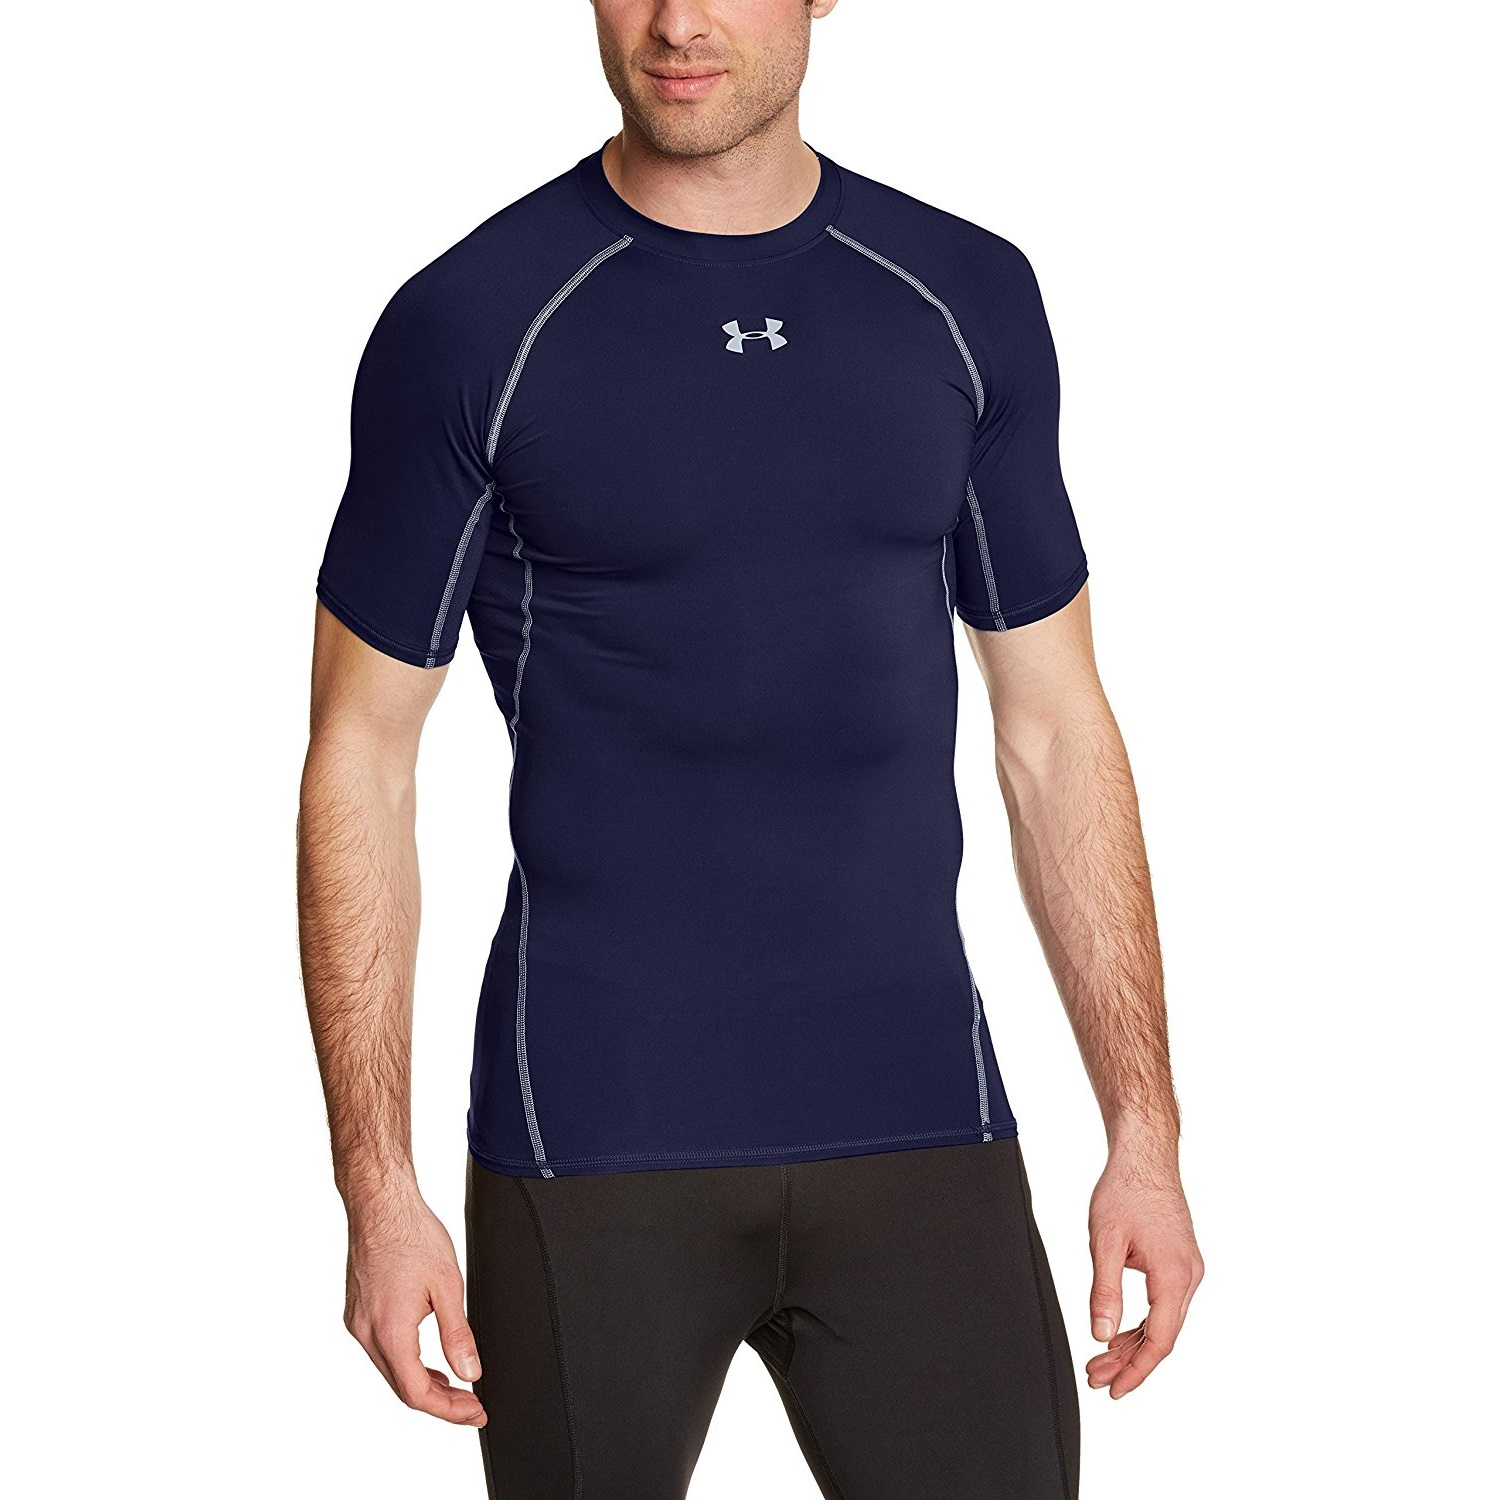 vaso esagerazione Gli ospiti  Under Armour Men's HeatGear Short Sleeve Compression Yoga Shirt